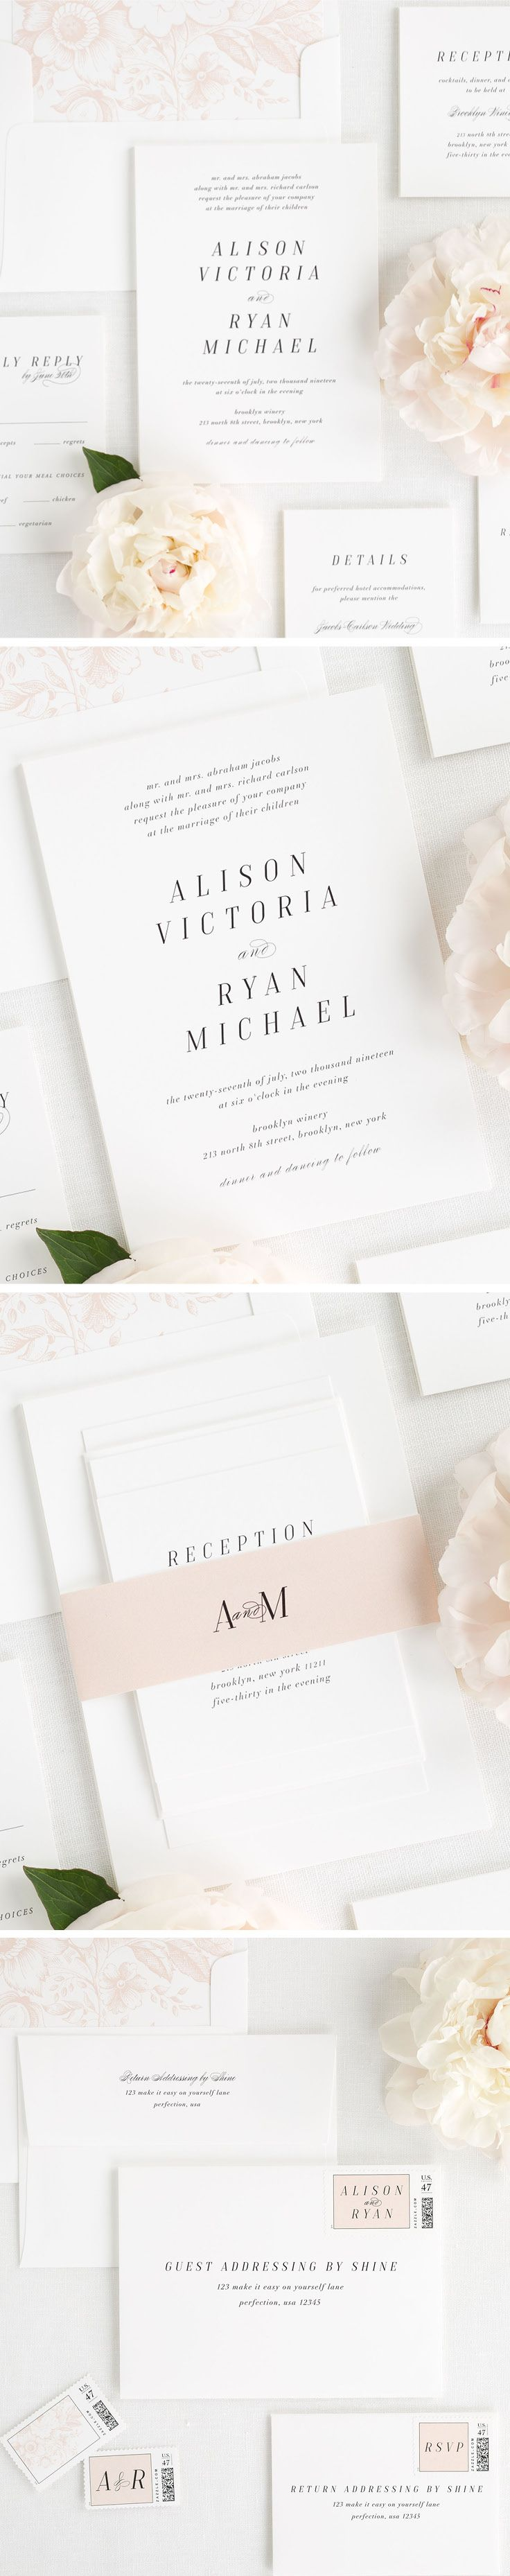 Meet Alison, our new wedding invitation design for 2017. With a light and airy feel, these simple yet chic wedding invitations are perfect for your timeless wedding celebration. Complete the look with our floral envelope liner and belly band in rose gold.